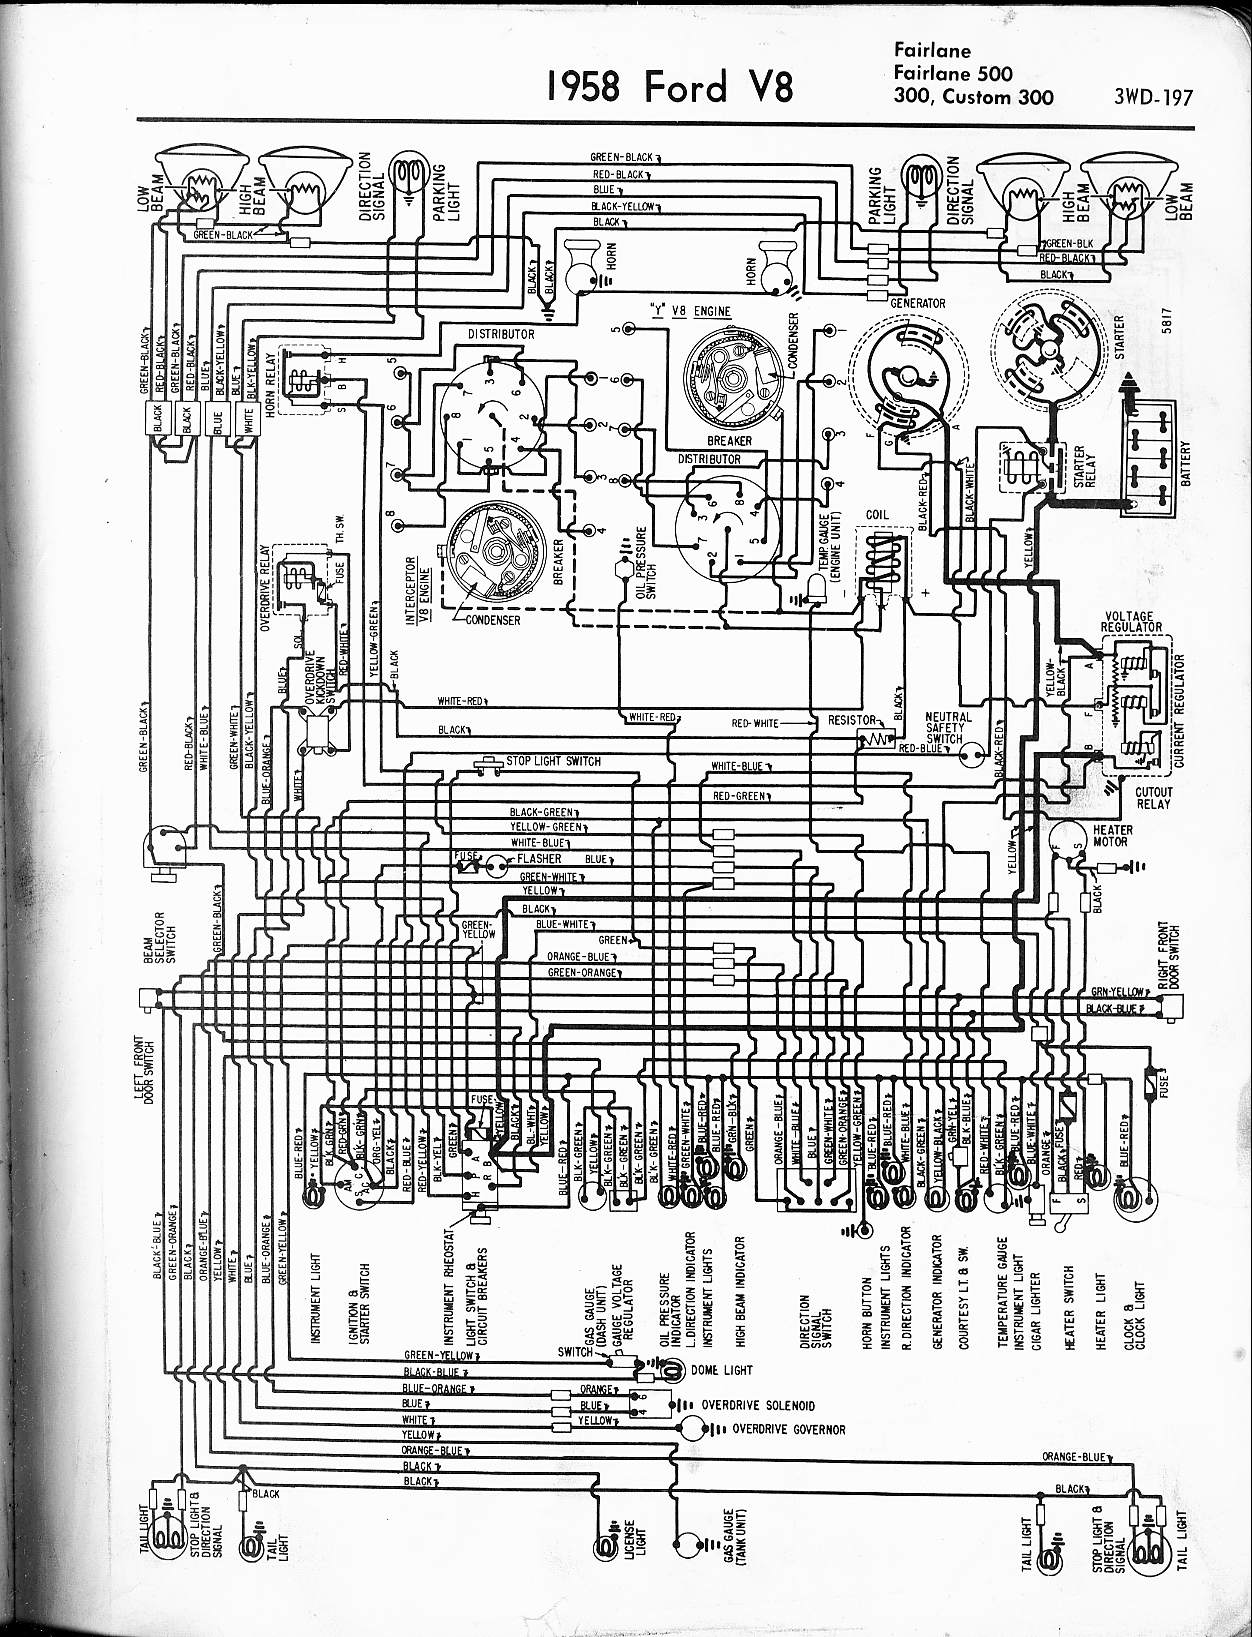 wiring diagram for 1966 ford ltd wiring block diagram 1969 Ford Custom 500 Wiring Diagram 65 ford galaxie fuse box wiring diagram all data 1973 ford truck wiring diagram 1968 ford